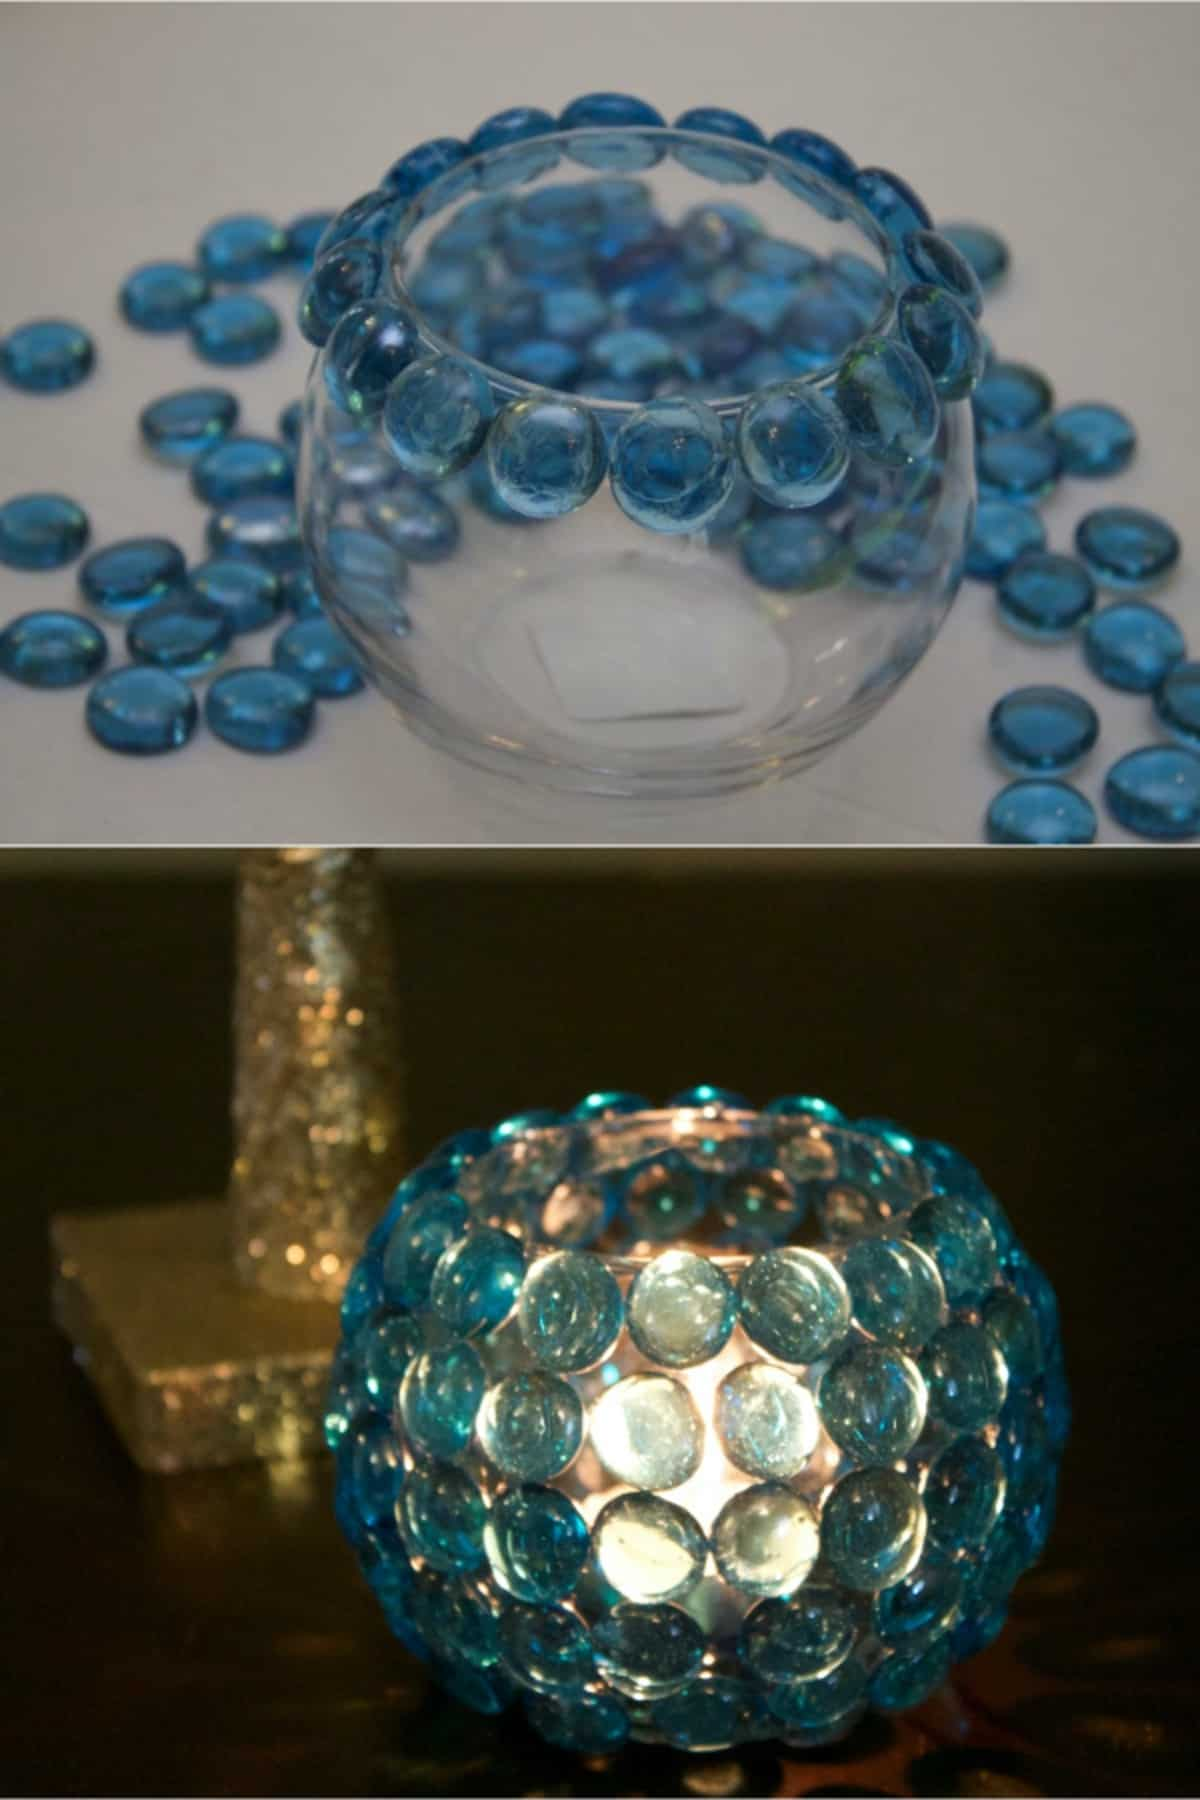 The Glass Bead Candle Holder